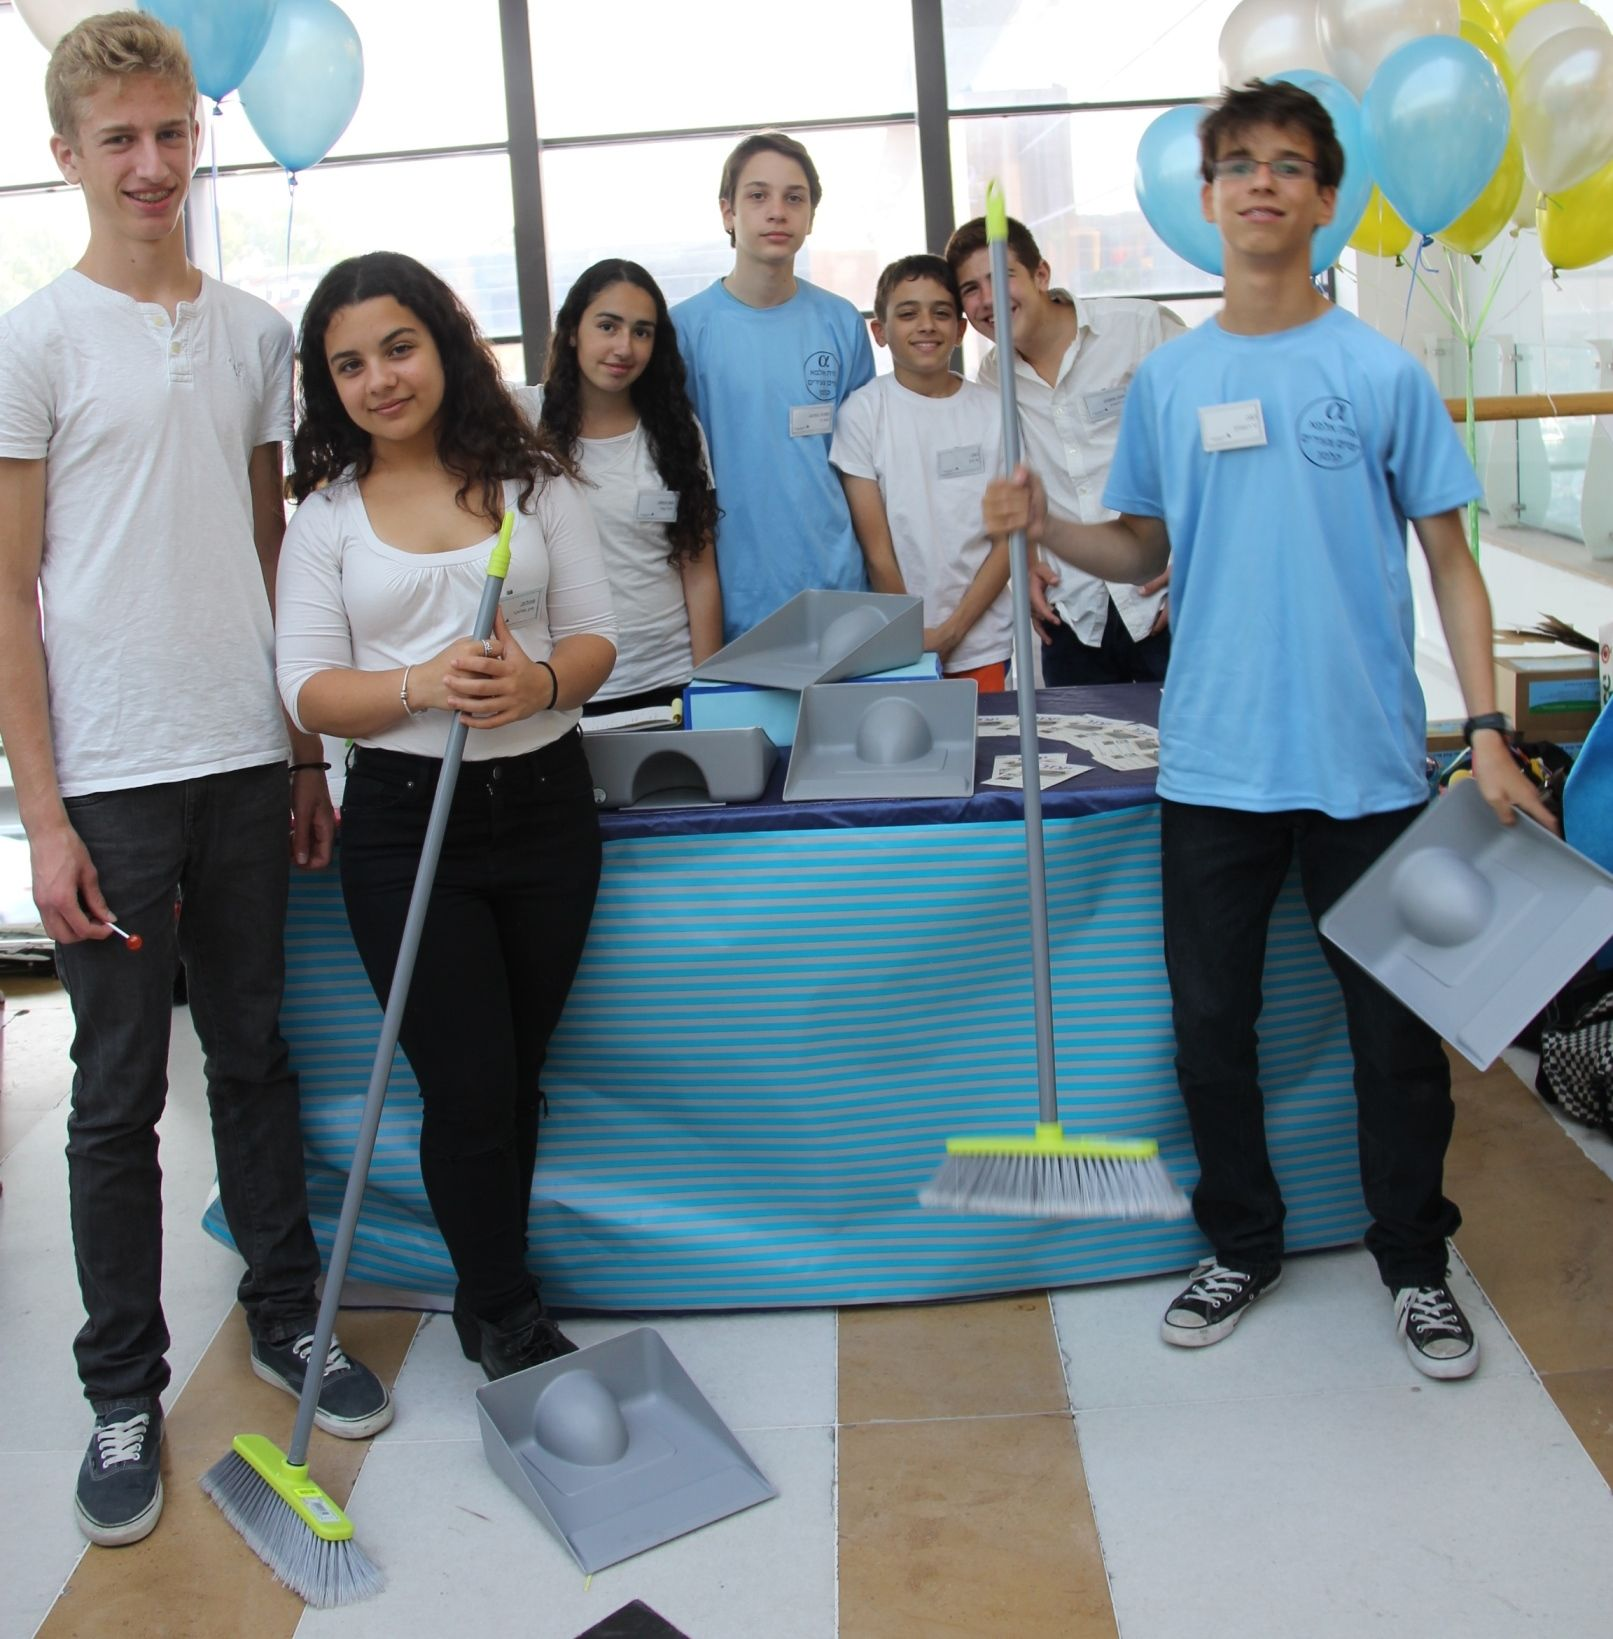 Daniel Alon and her group invented a mop that can be used by people with limited mobility. Photo courtesy of Young Entrepreneurs